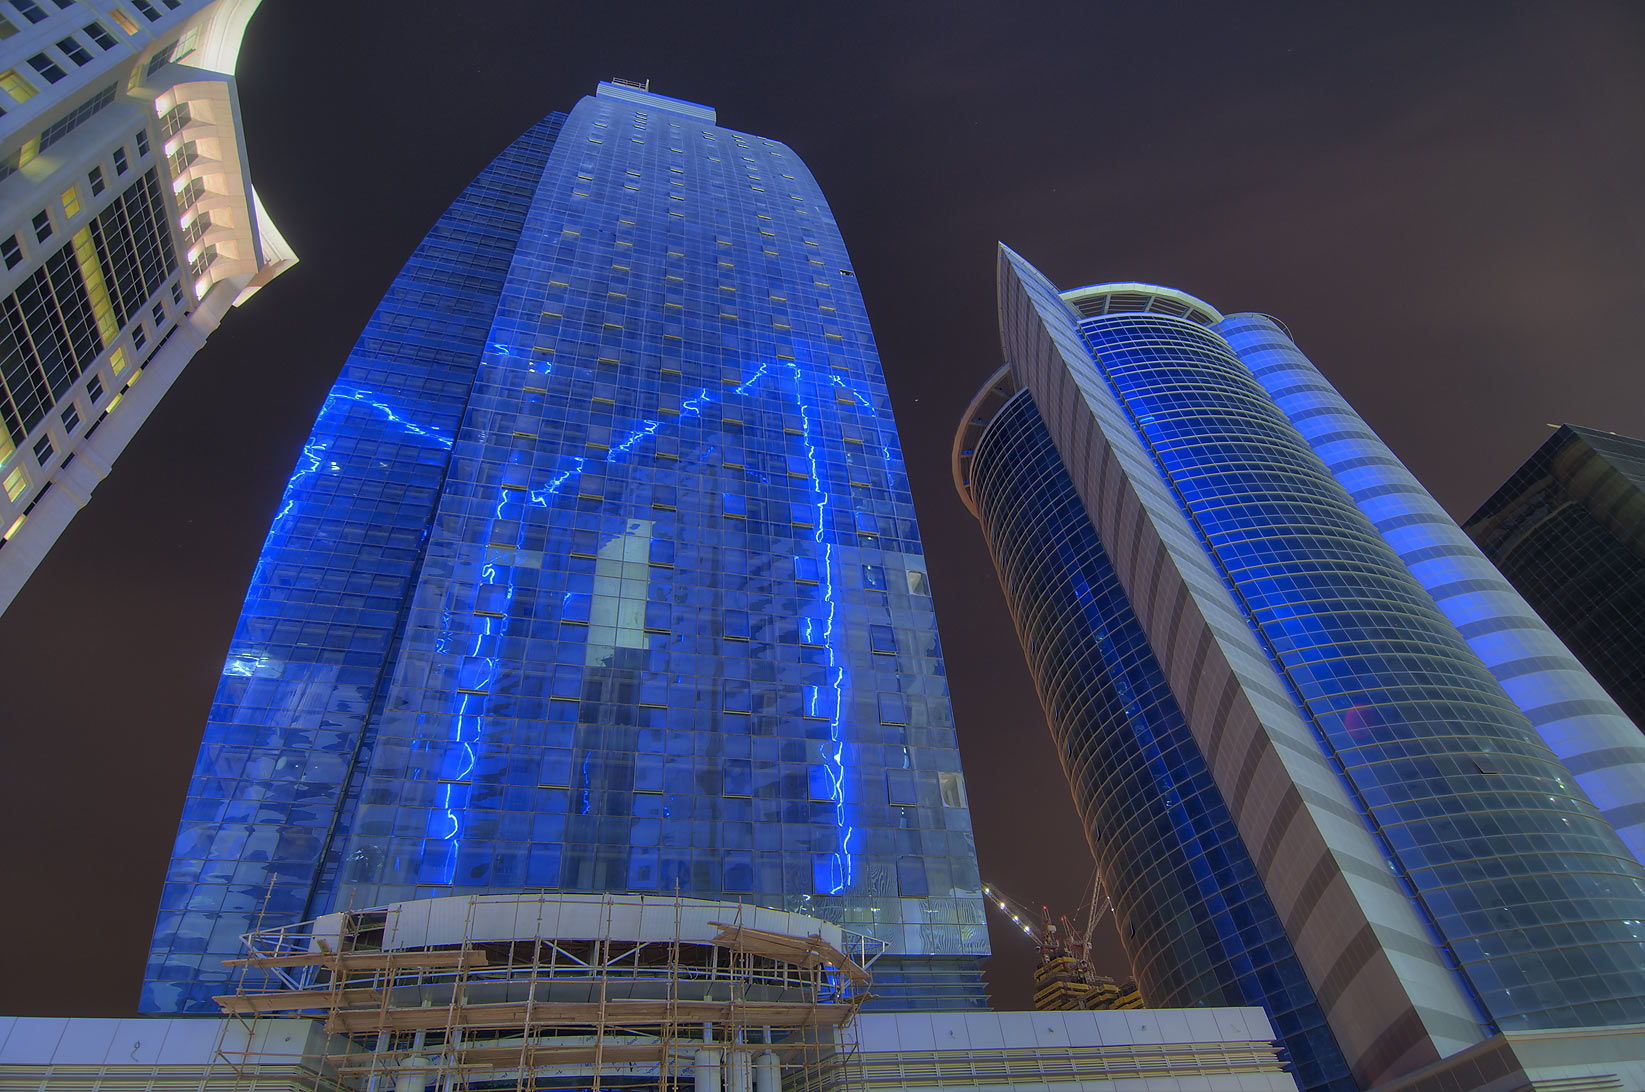 Al Huda Engineering Works and Taawun towers in West Bay. Doha, Qatar